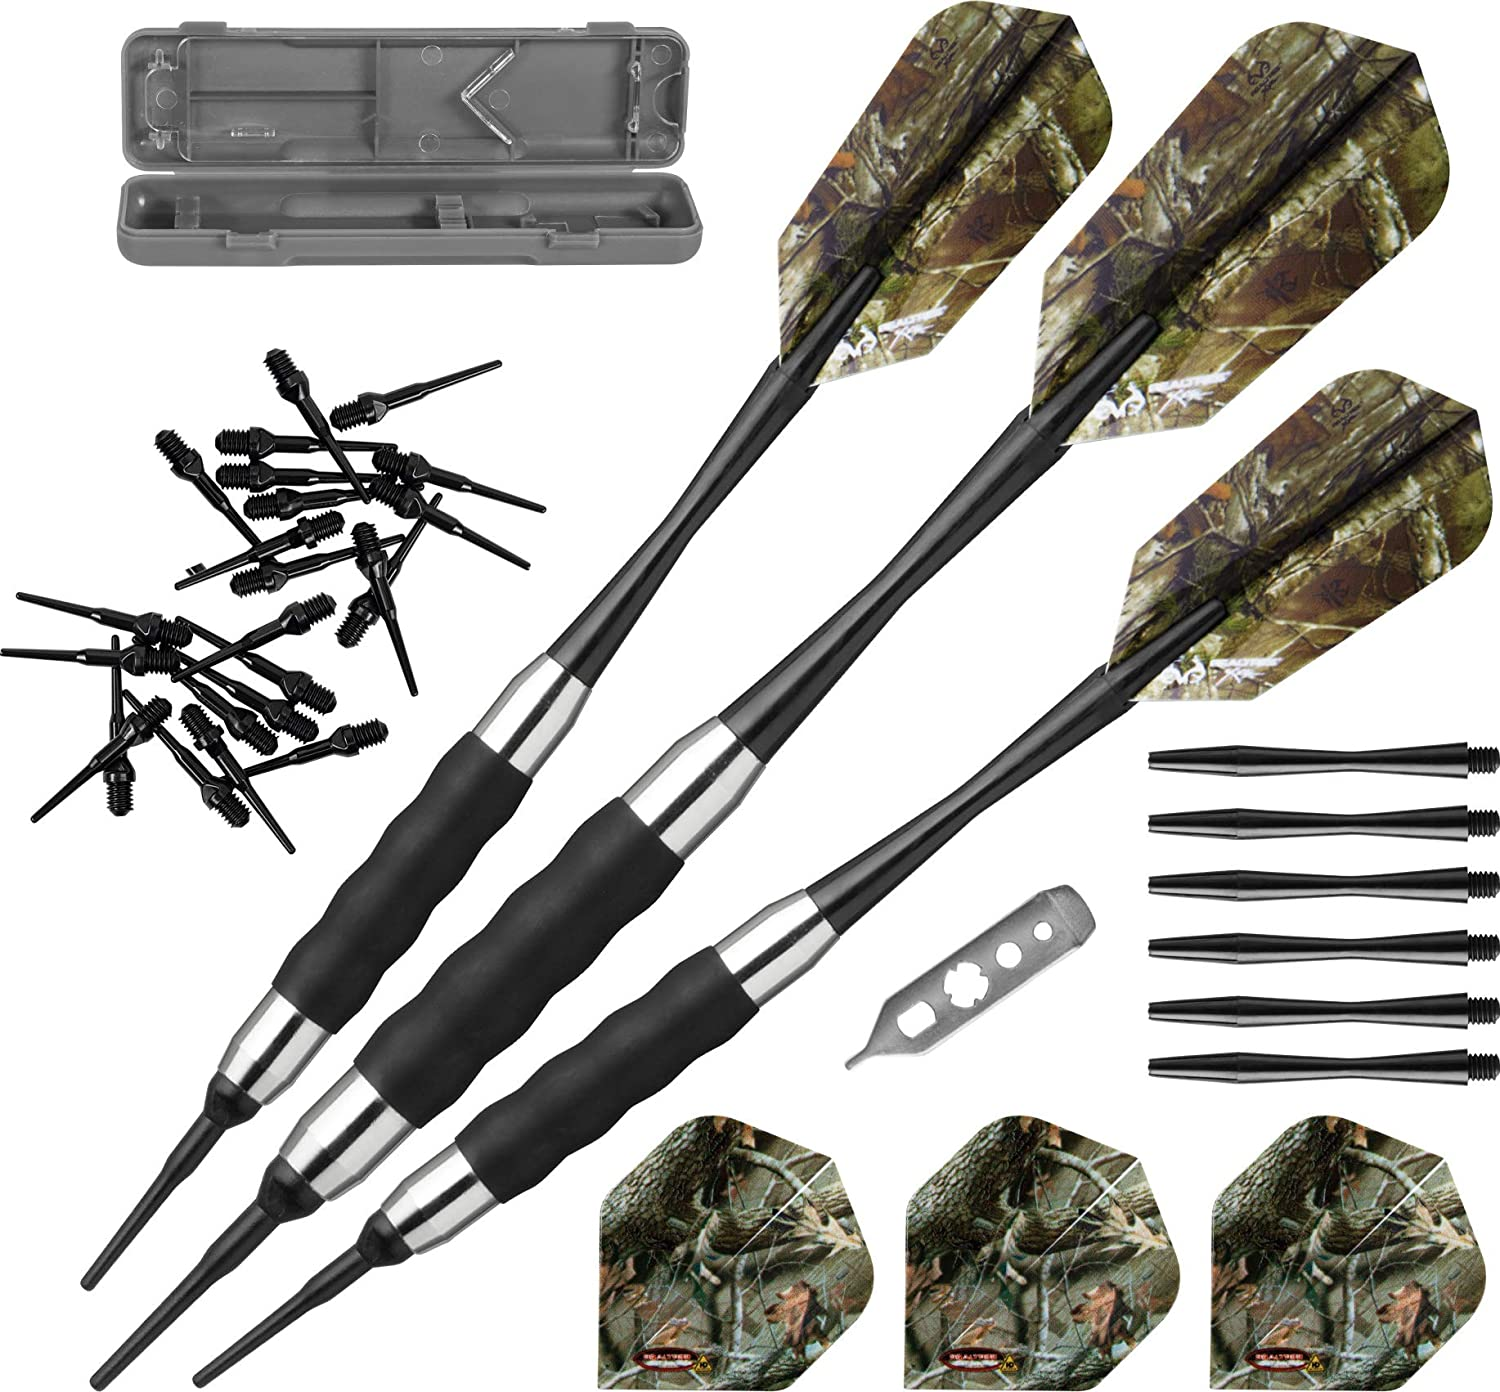 Fat Cat Darts 17 gm Soft Tip Dart Set-Camouflage Flights-Choice-Shafts-Tips